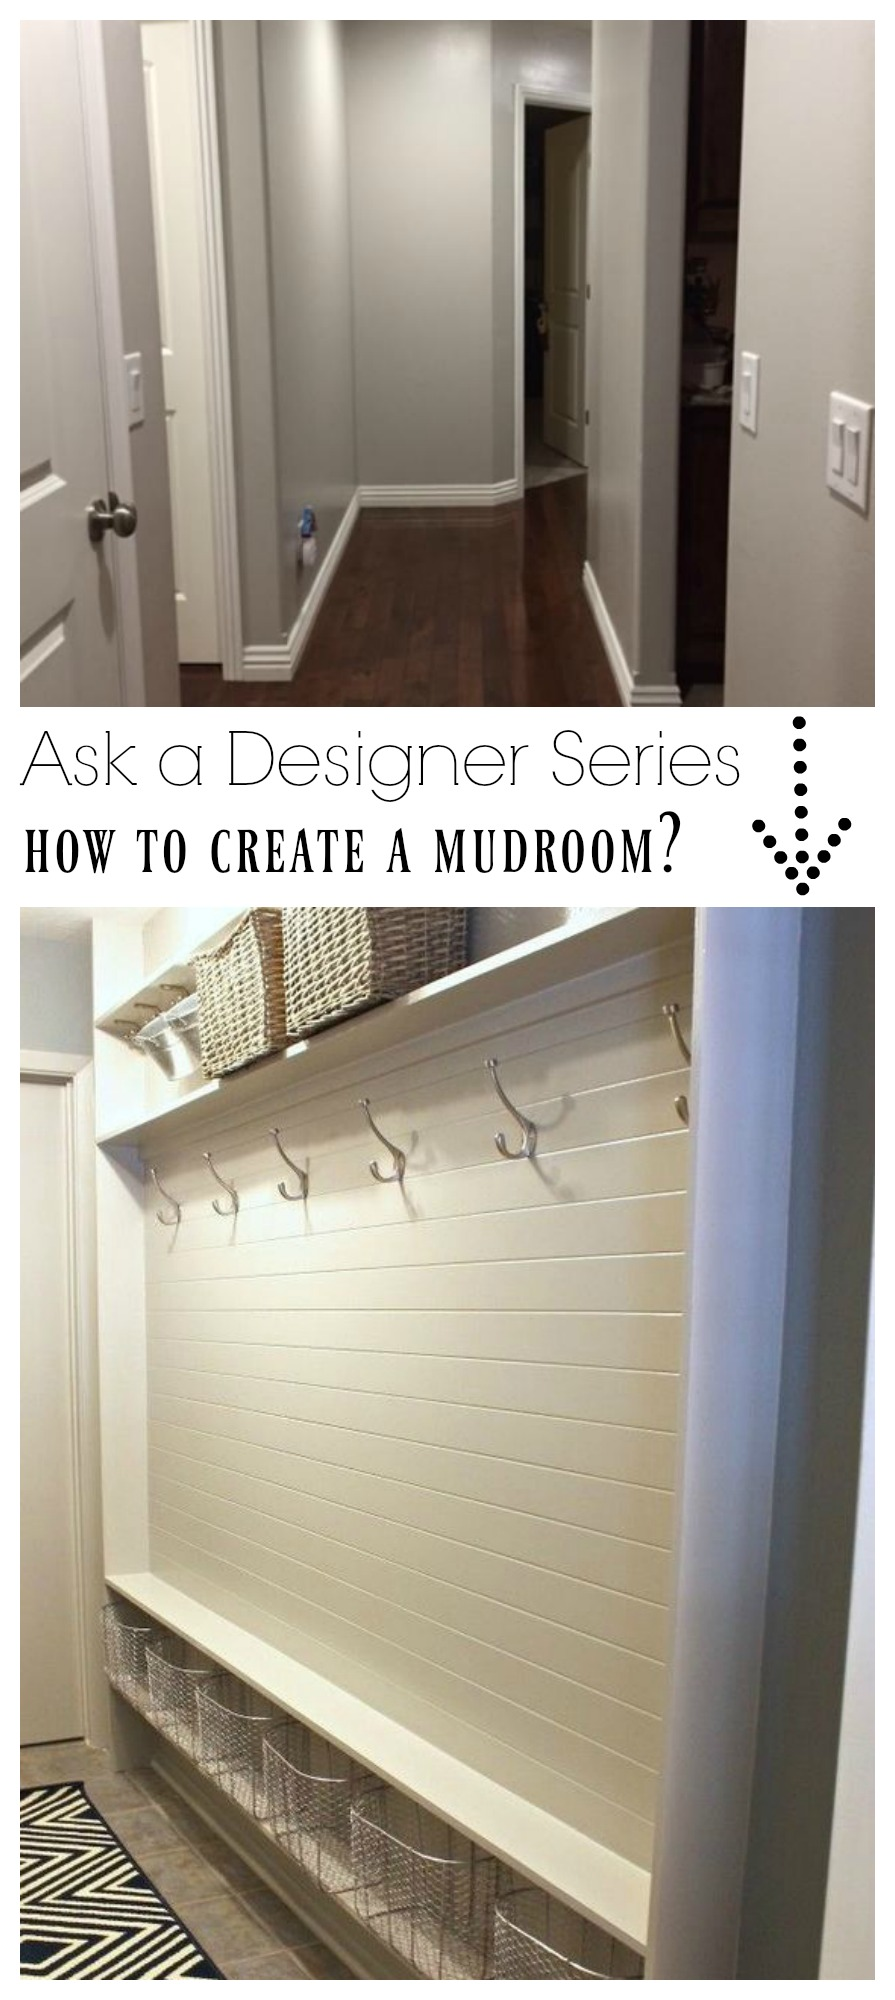 Ask a Designer Series- Ideas for a Mudroom in a Small Space?